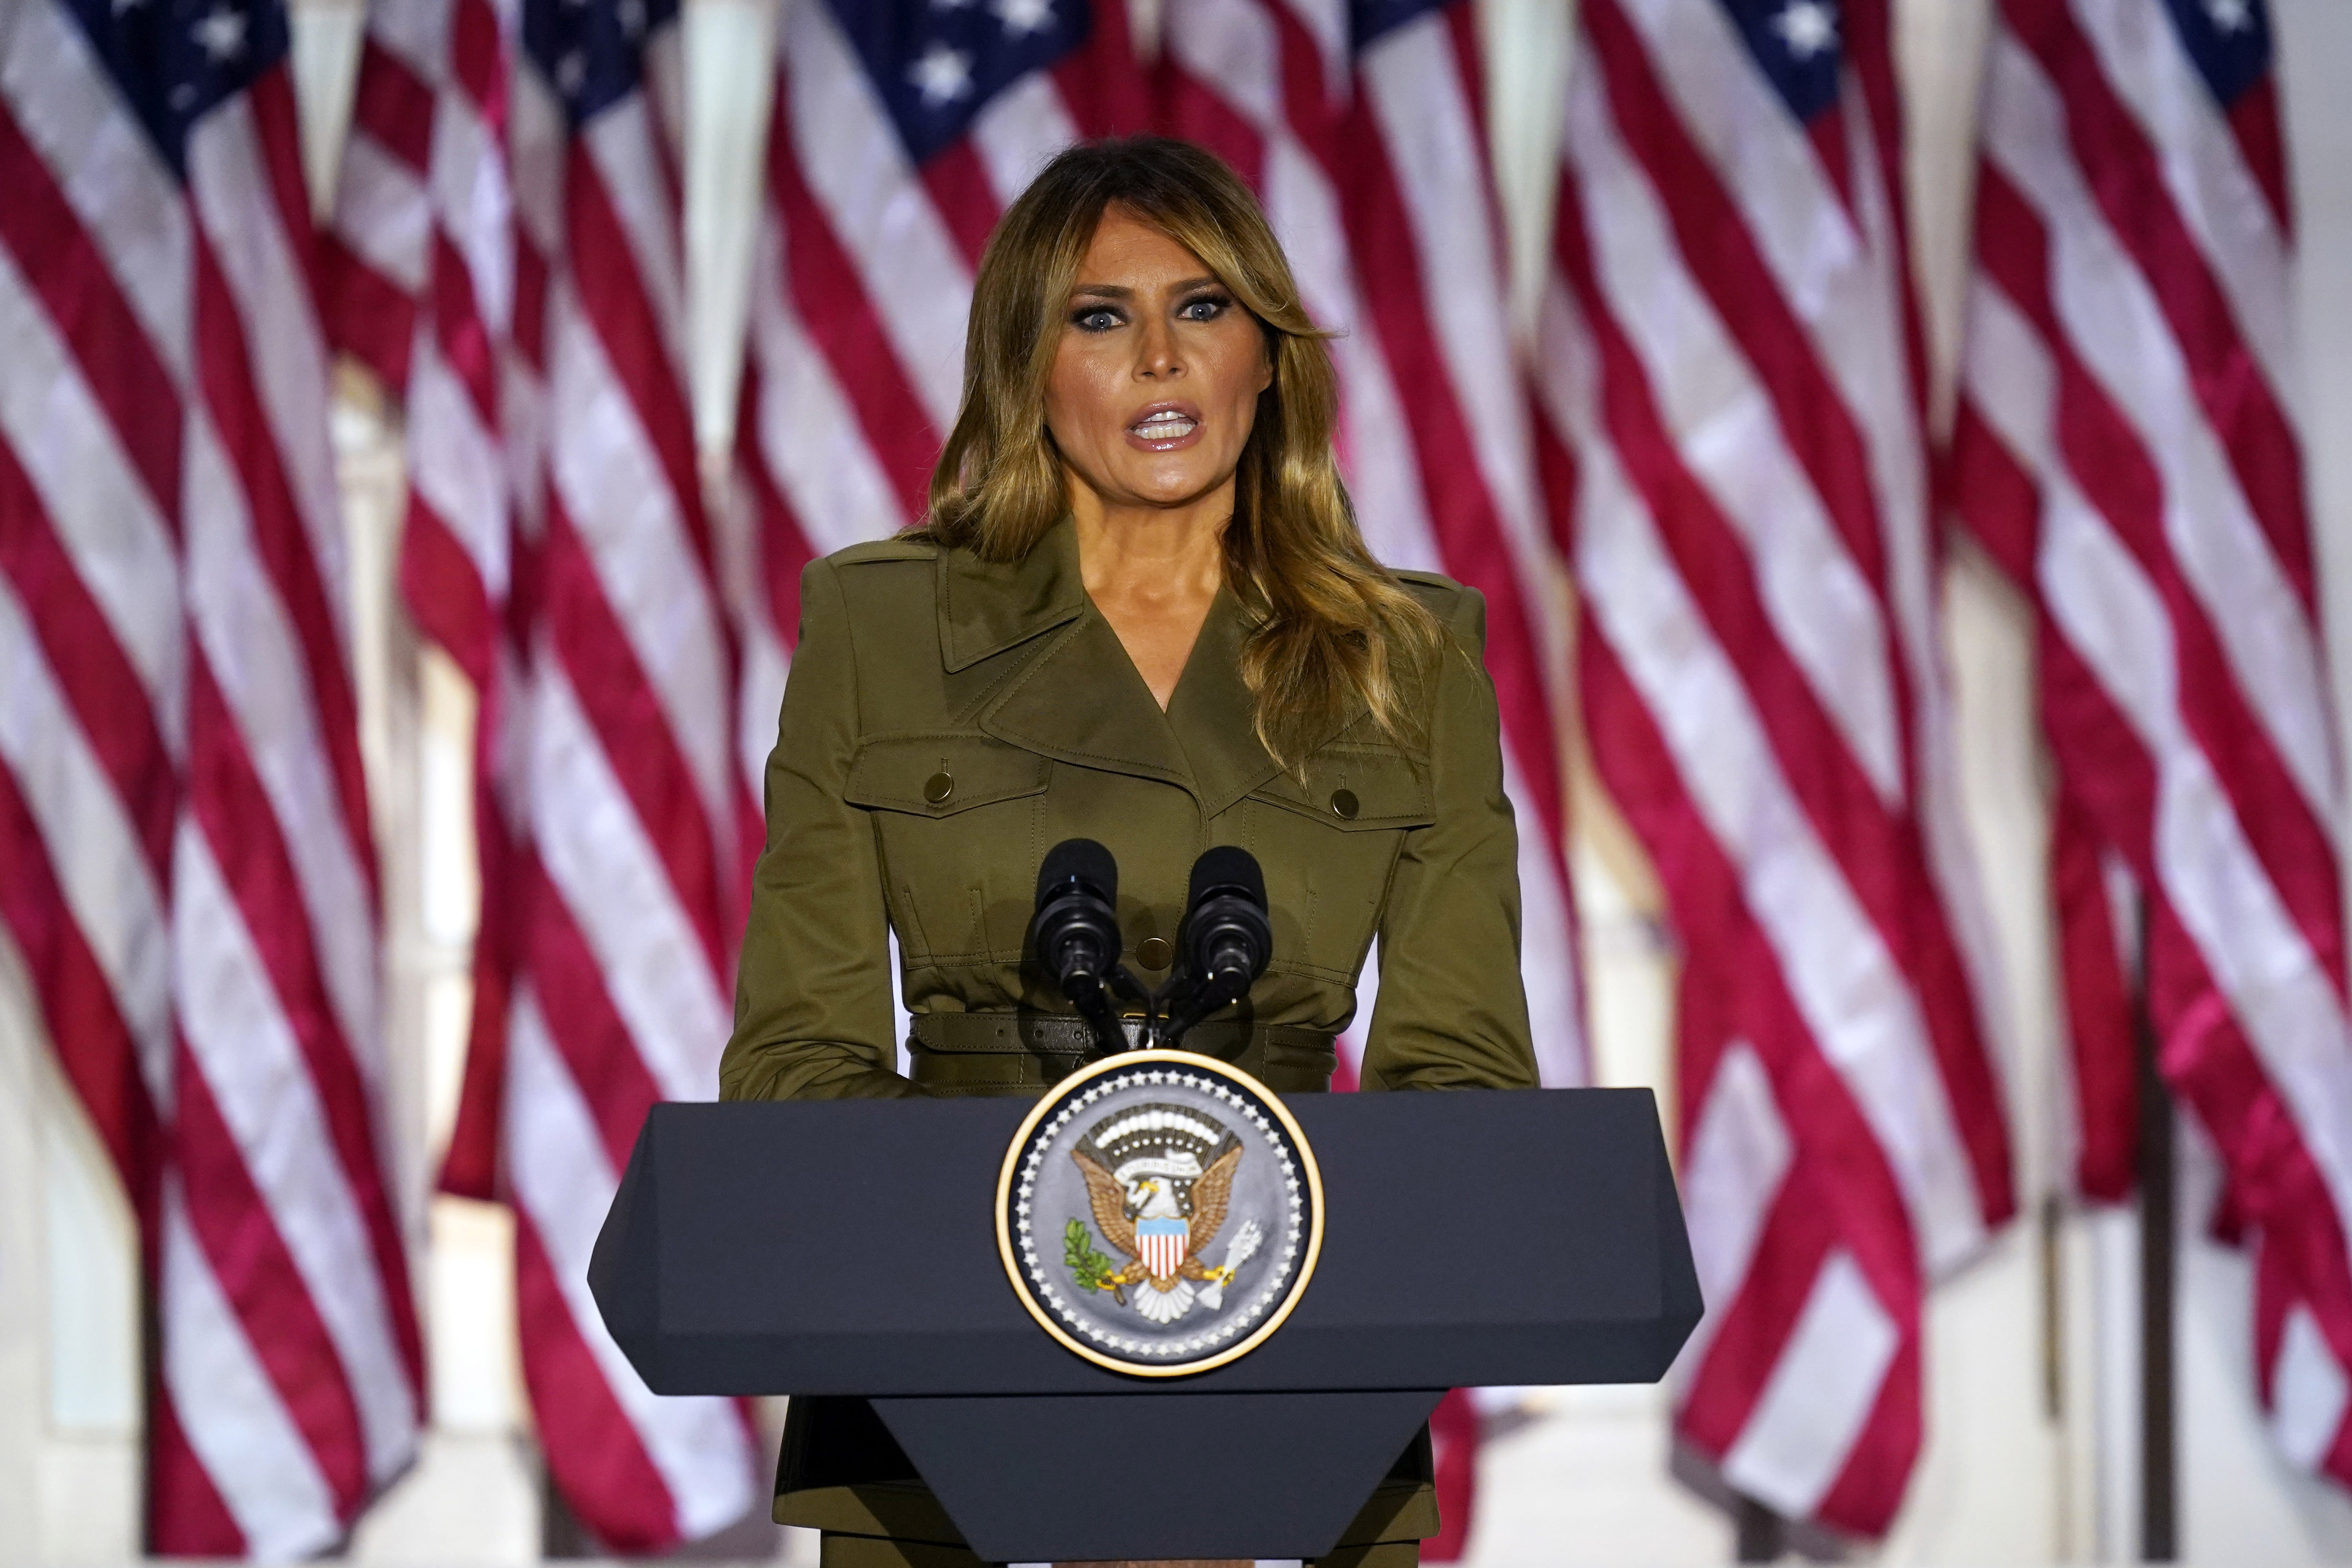 First lady Melania Trump speaks on the second day of the Republican National Convention from the Rose Garden of the White House, Tuesday, Aug. 25, 2020, in Washington. Photo: AP